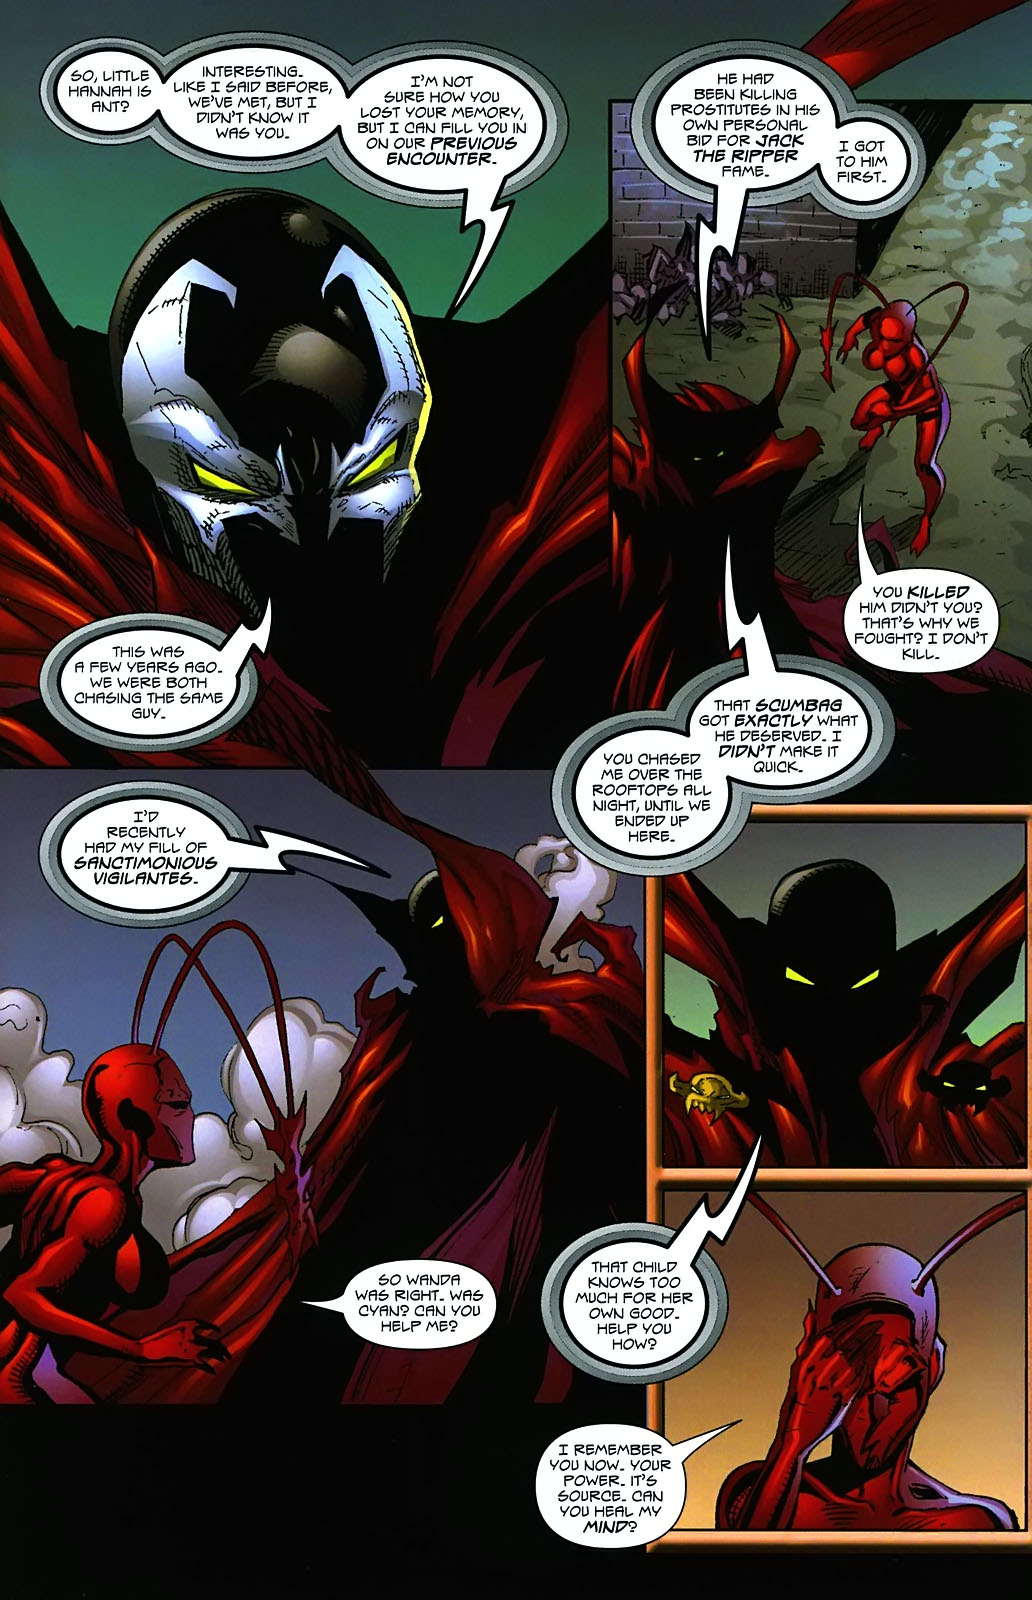 Read online Ant comic -  Issue #3 - 19